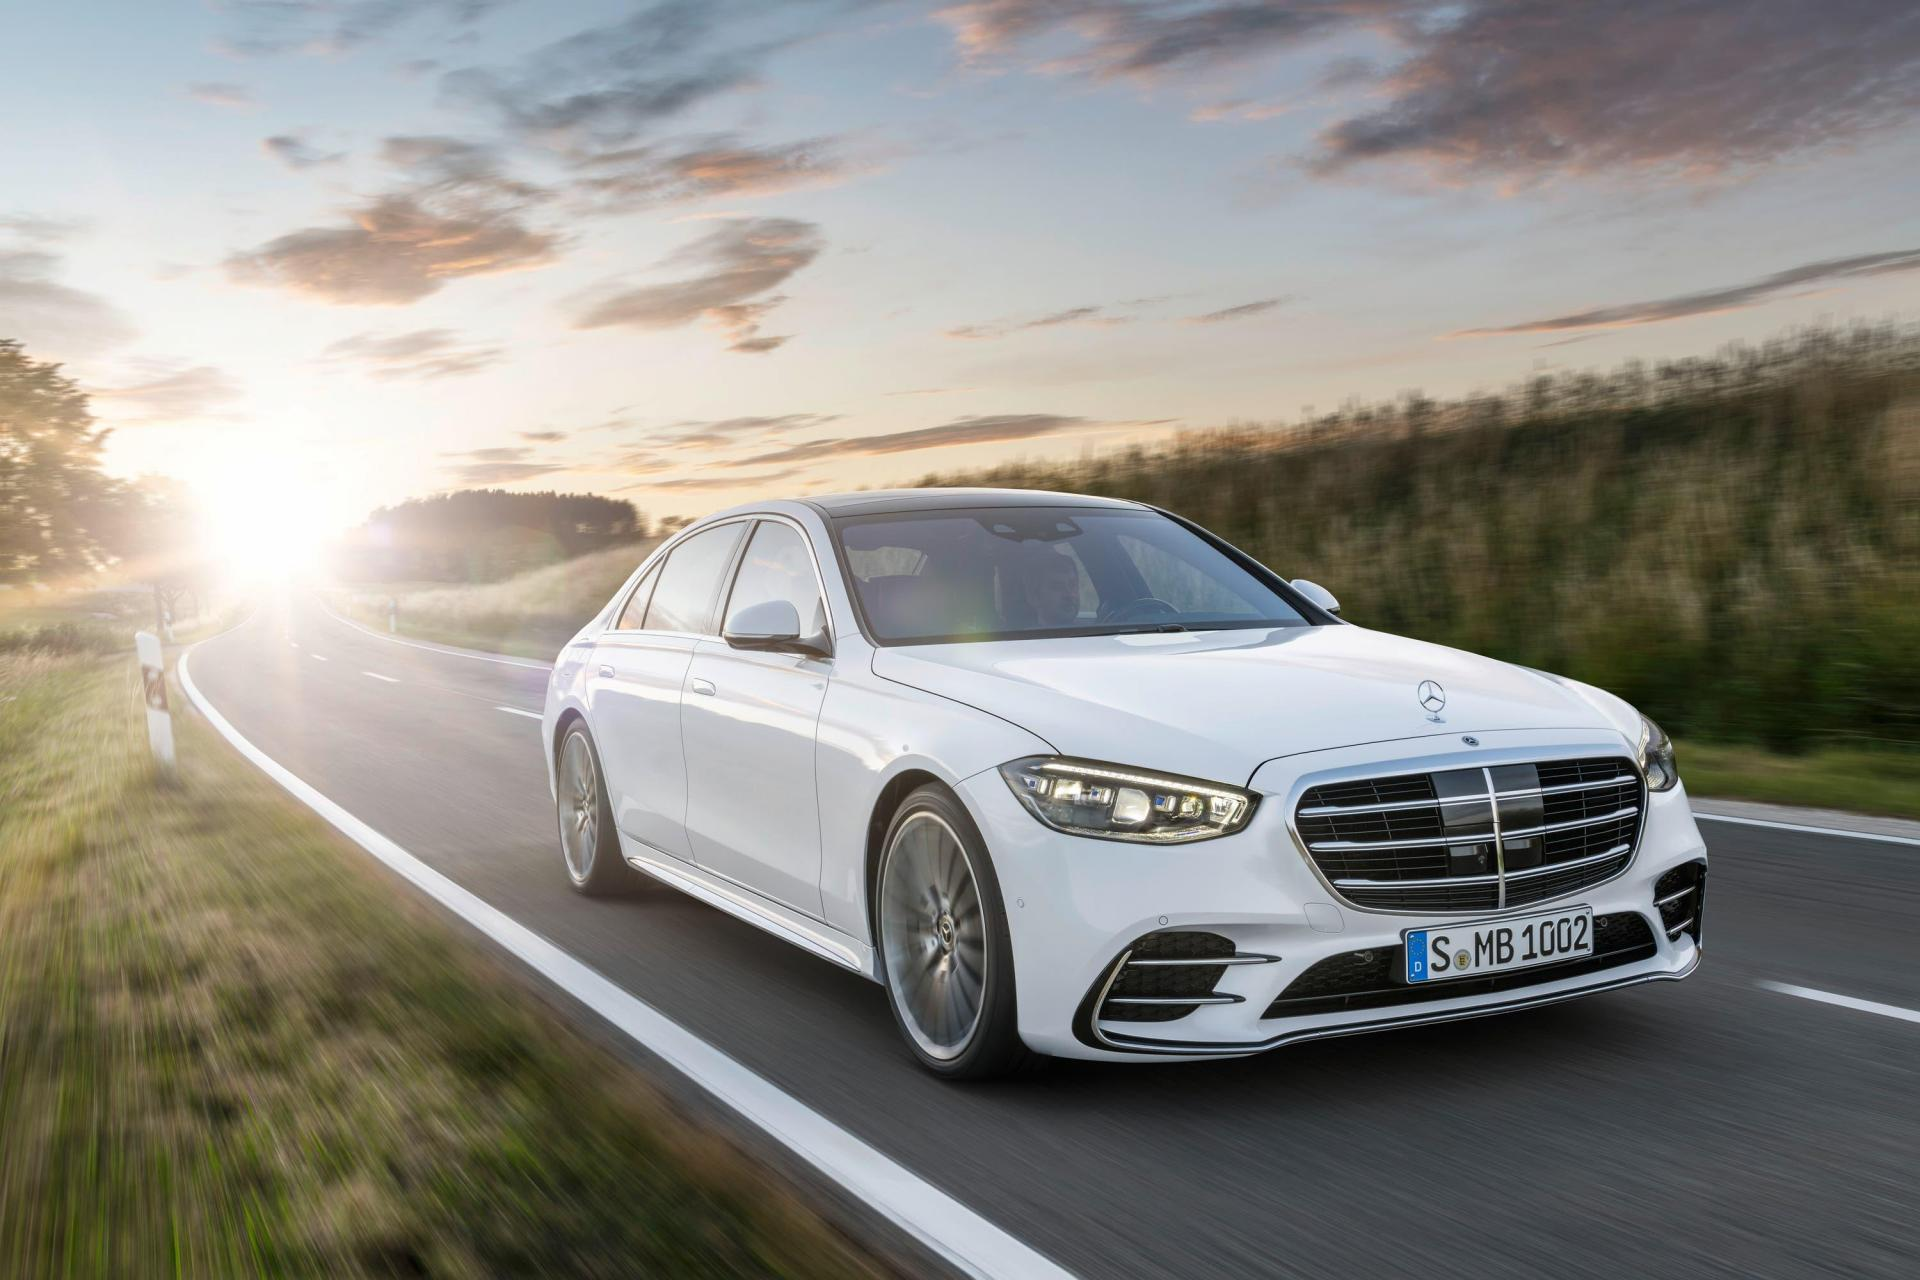 The S-Class sits at the top of the range of saloons offered by Mercedes.